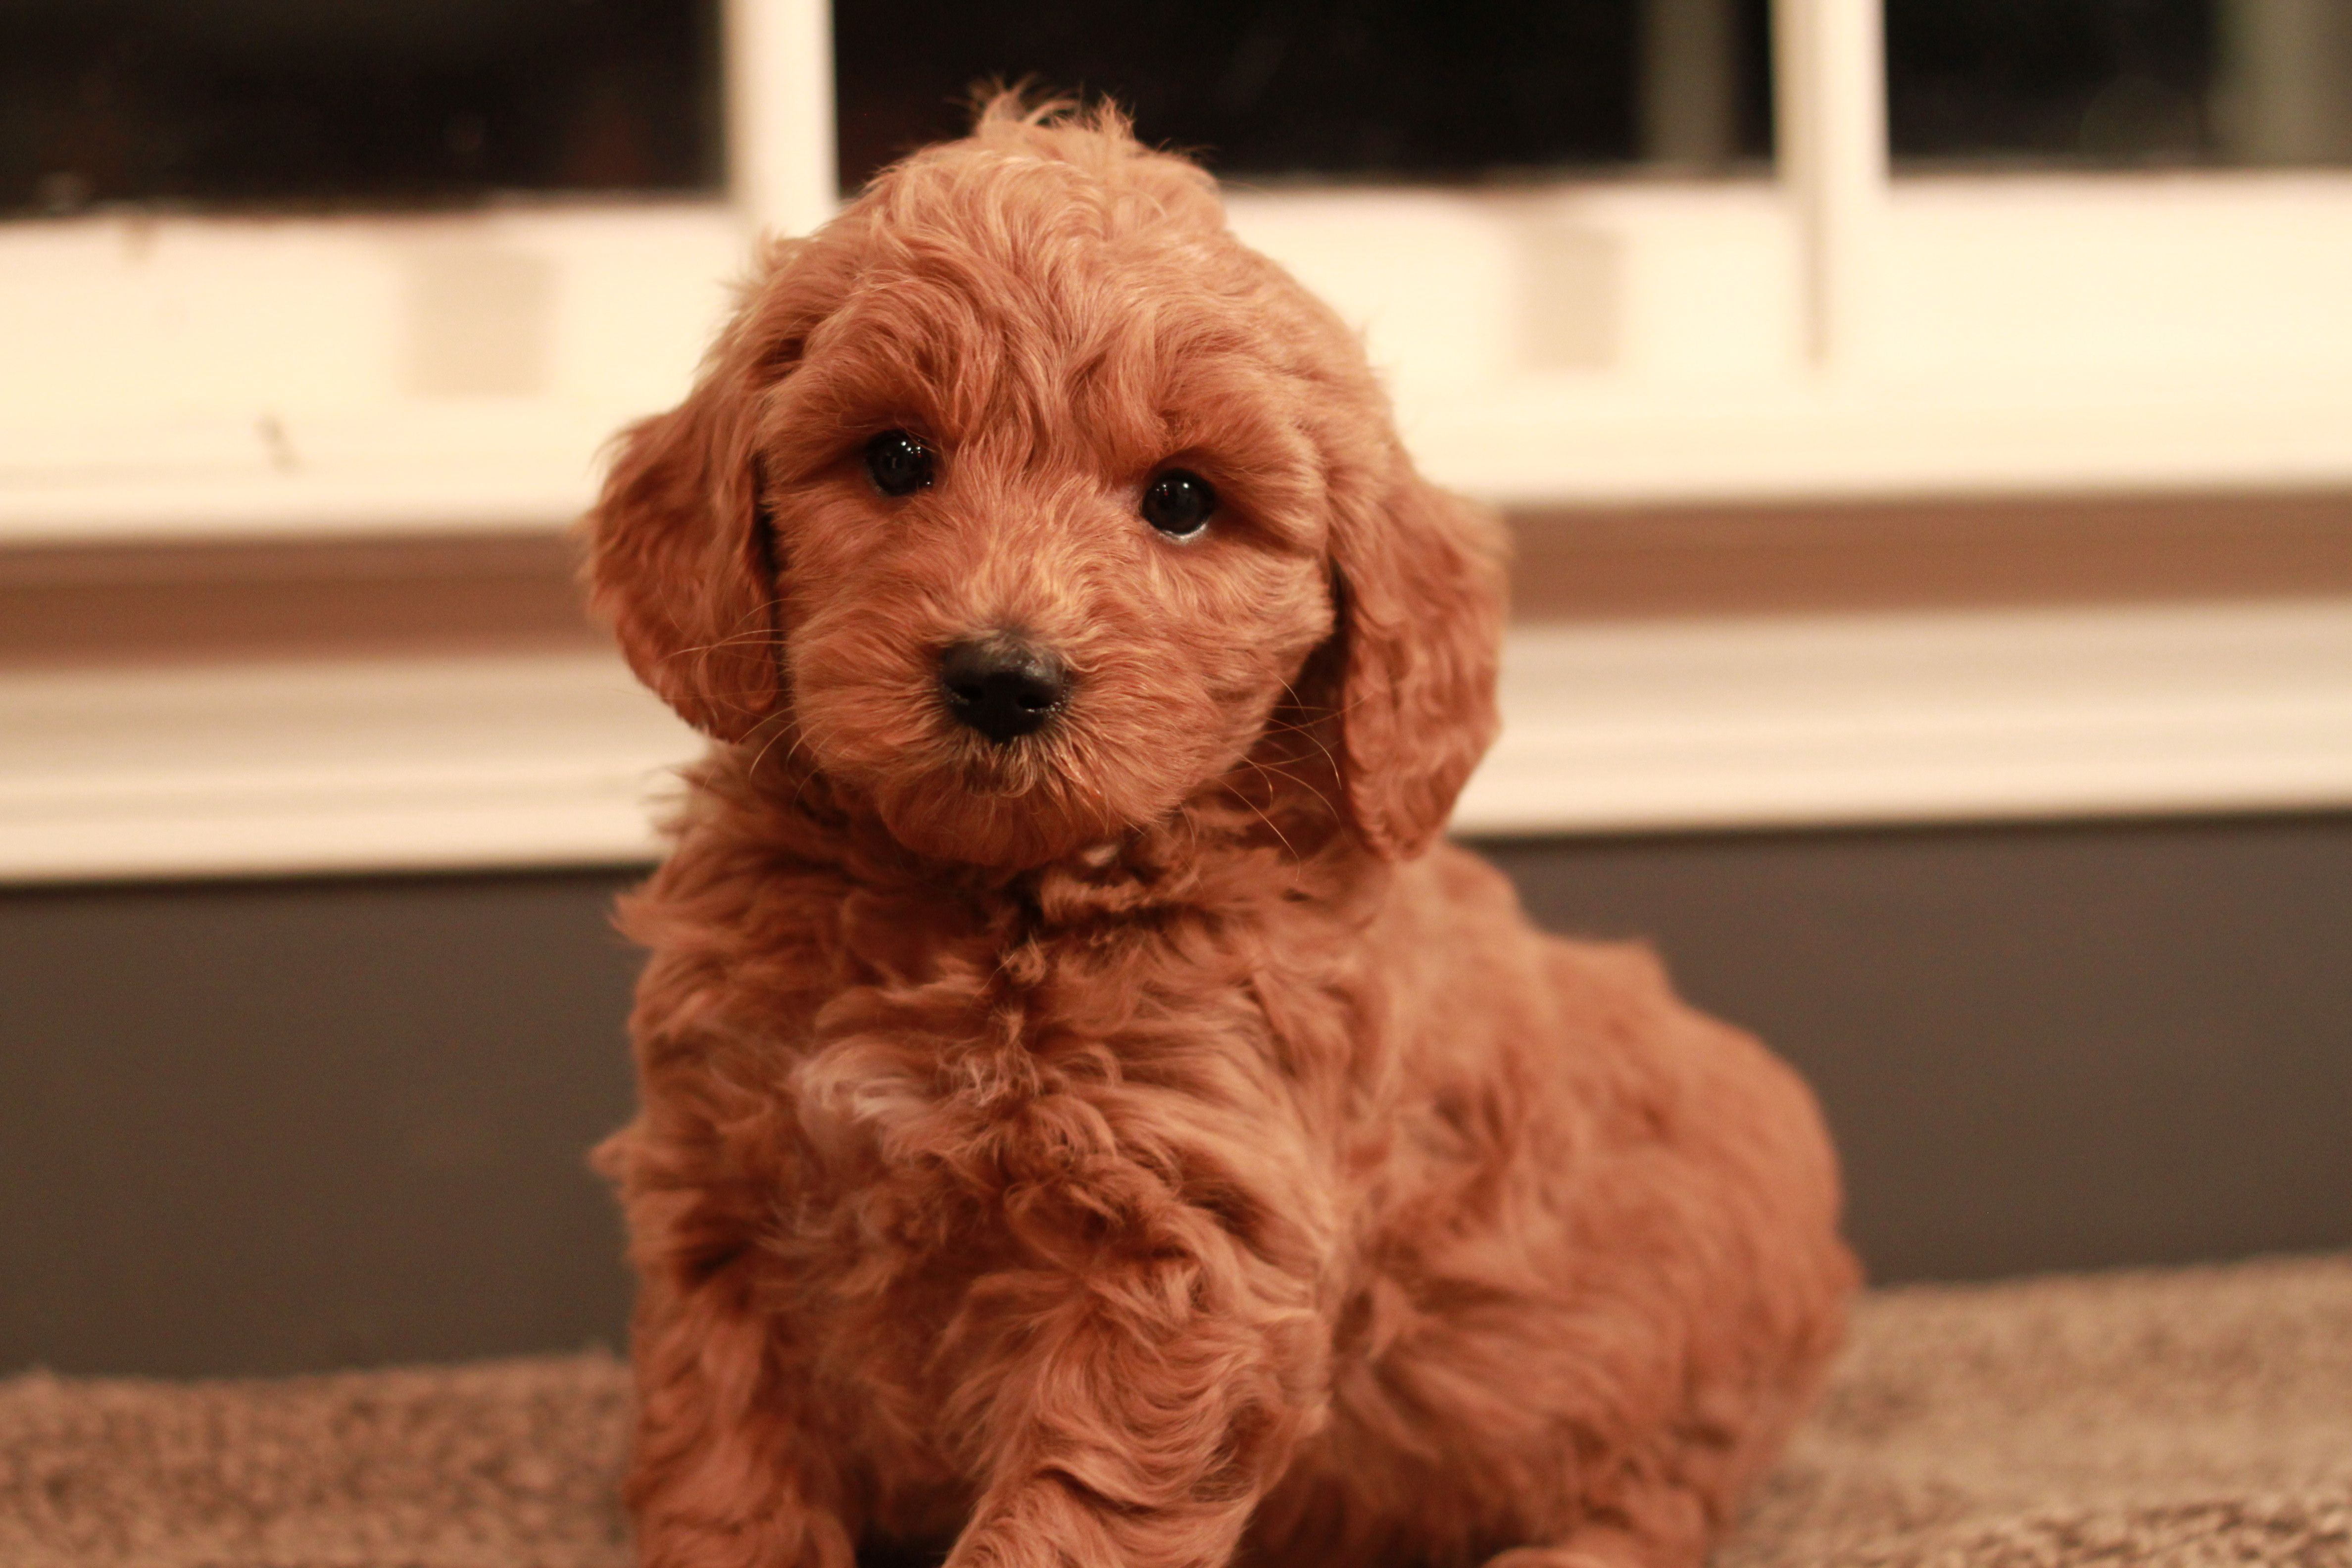 Nike Red Goldendoodle Puppy 6 Weeks Old Goldendoodle Puppy